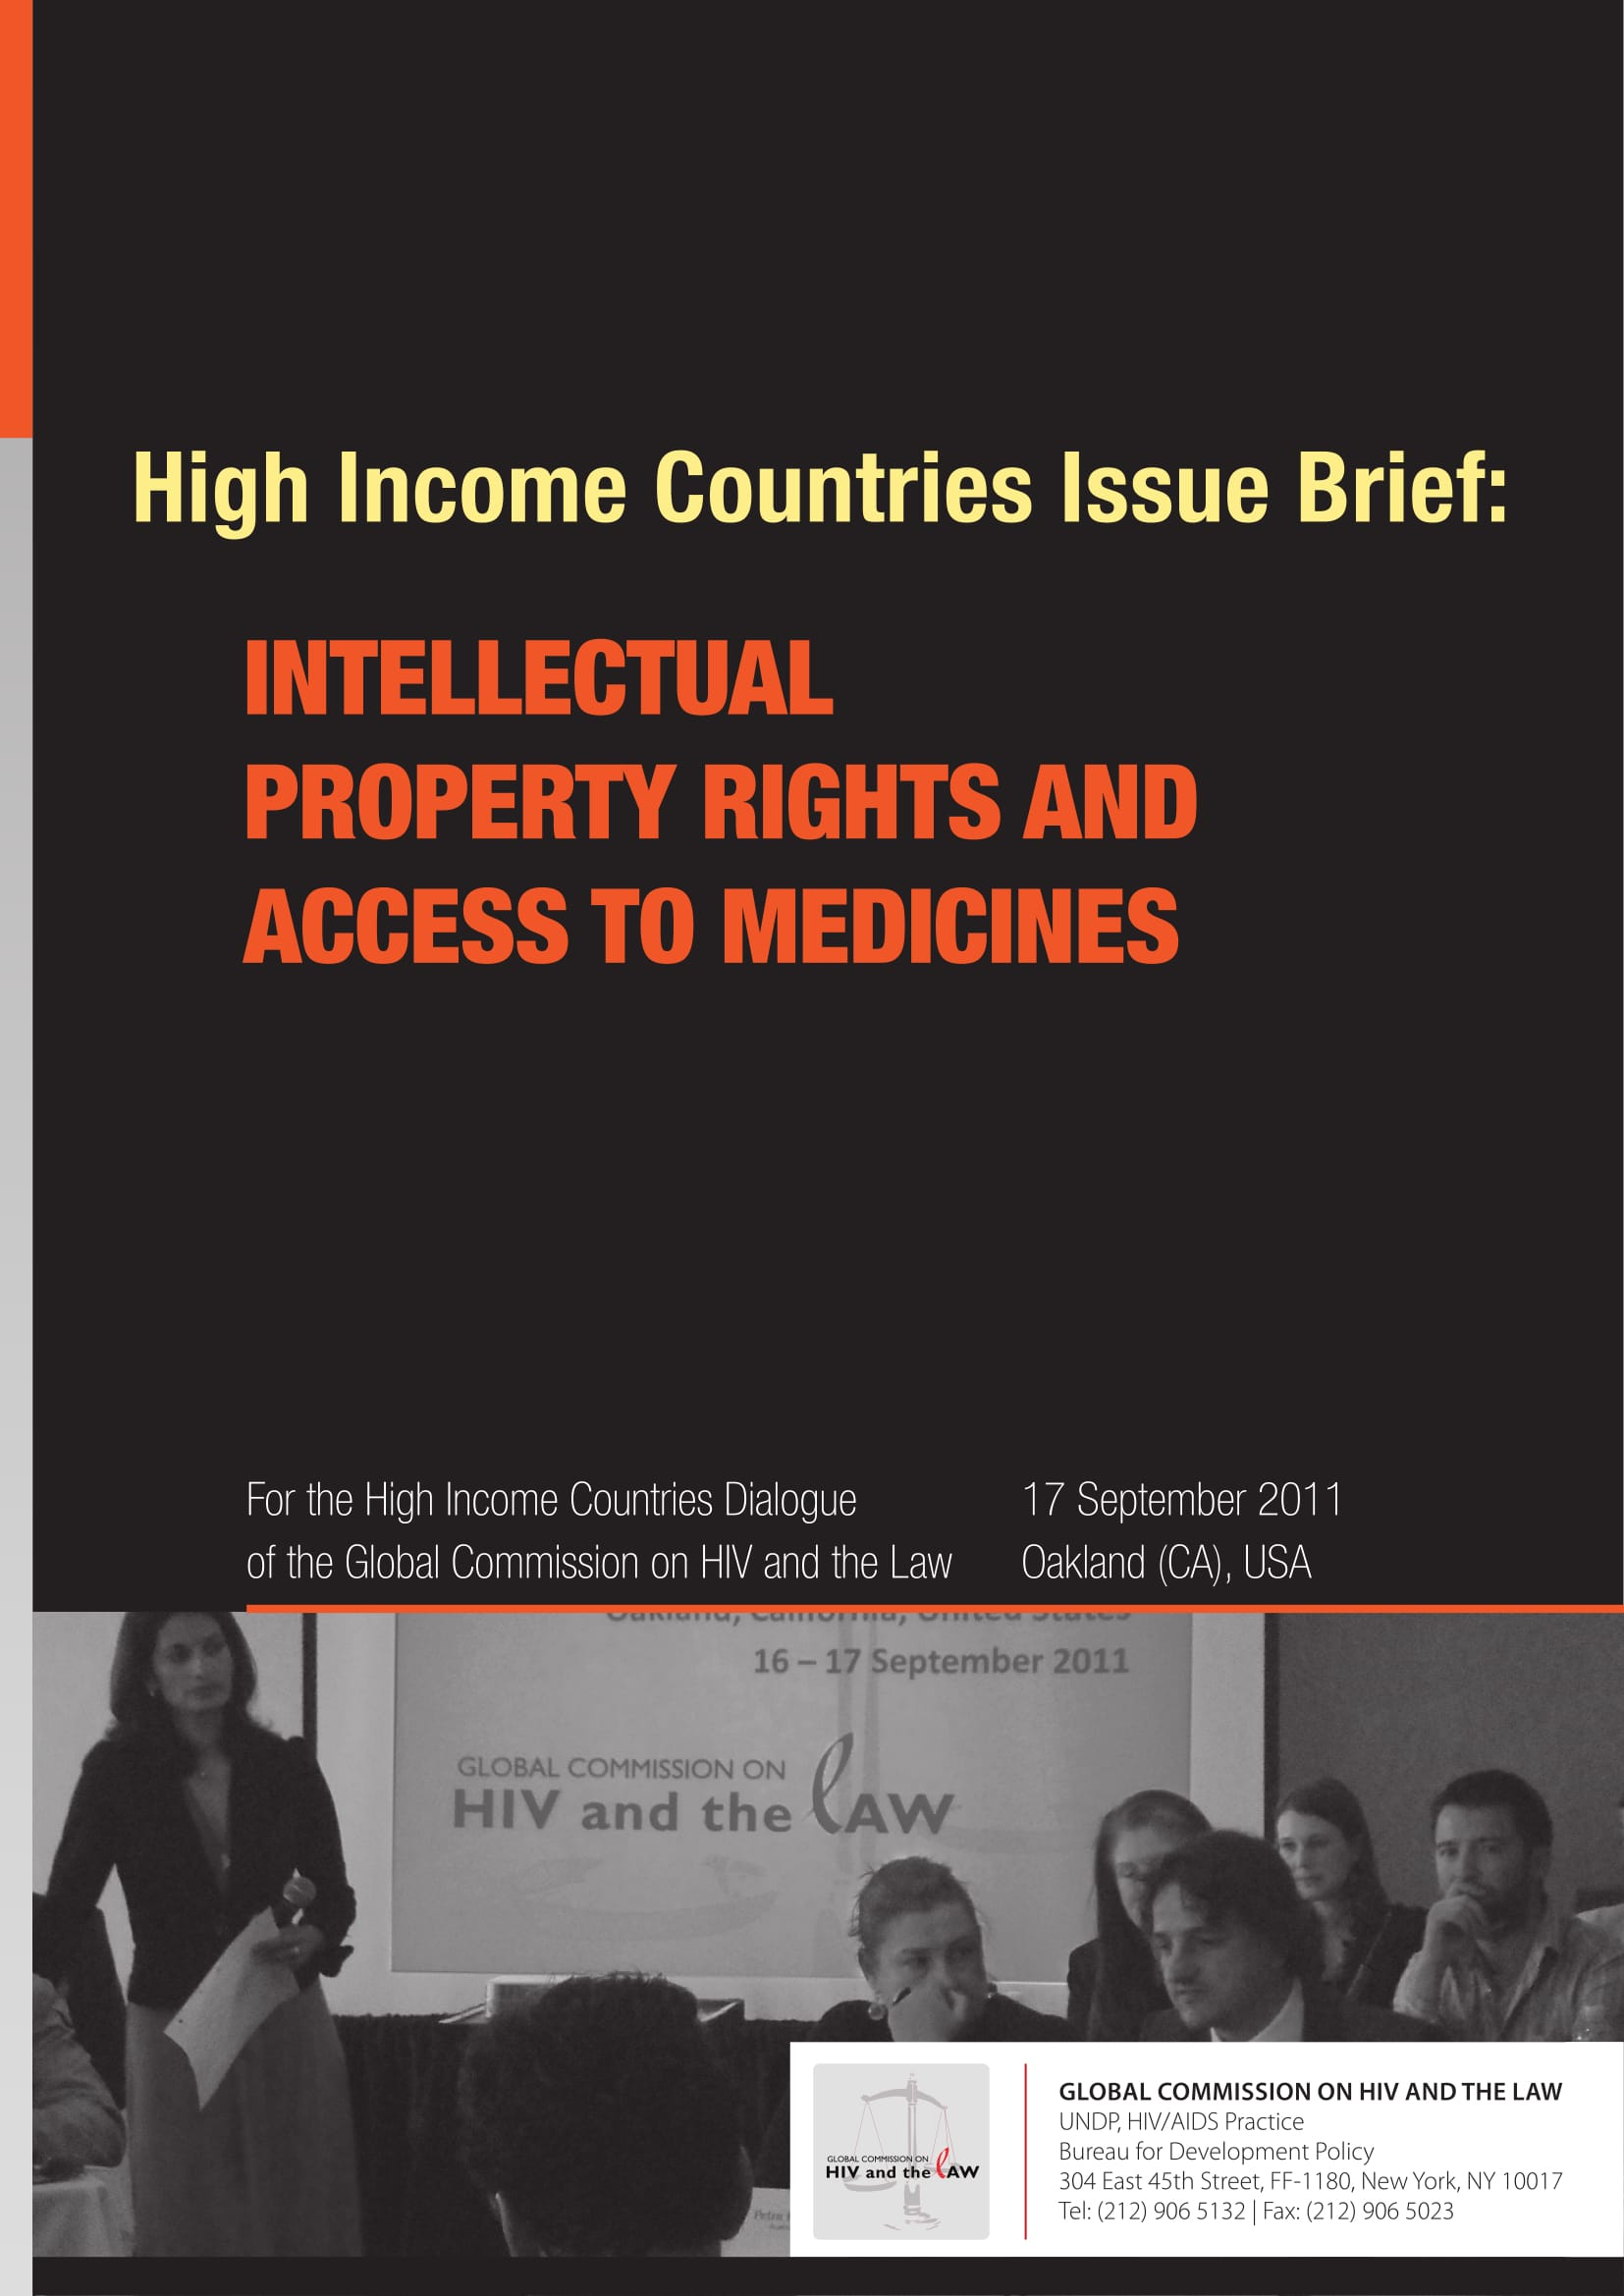 High Income Countries Issue Brief: Intellectual property rights and access to medicines